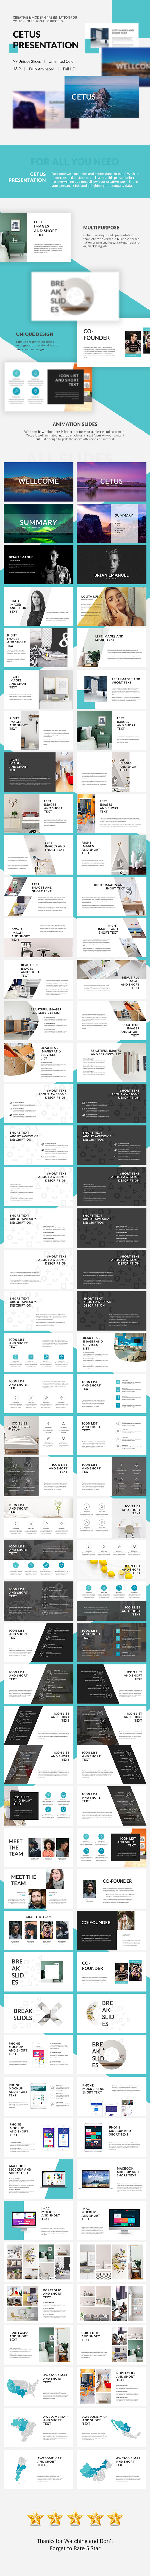 Cetus Powerpoint - Pitch Deck PowerPoint Templates